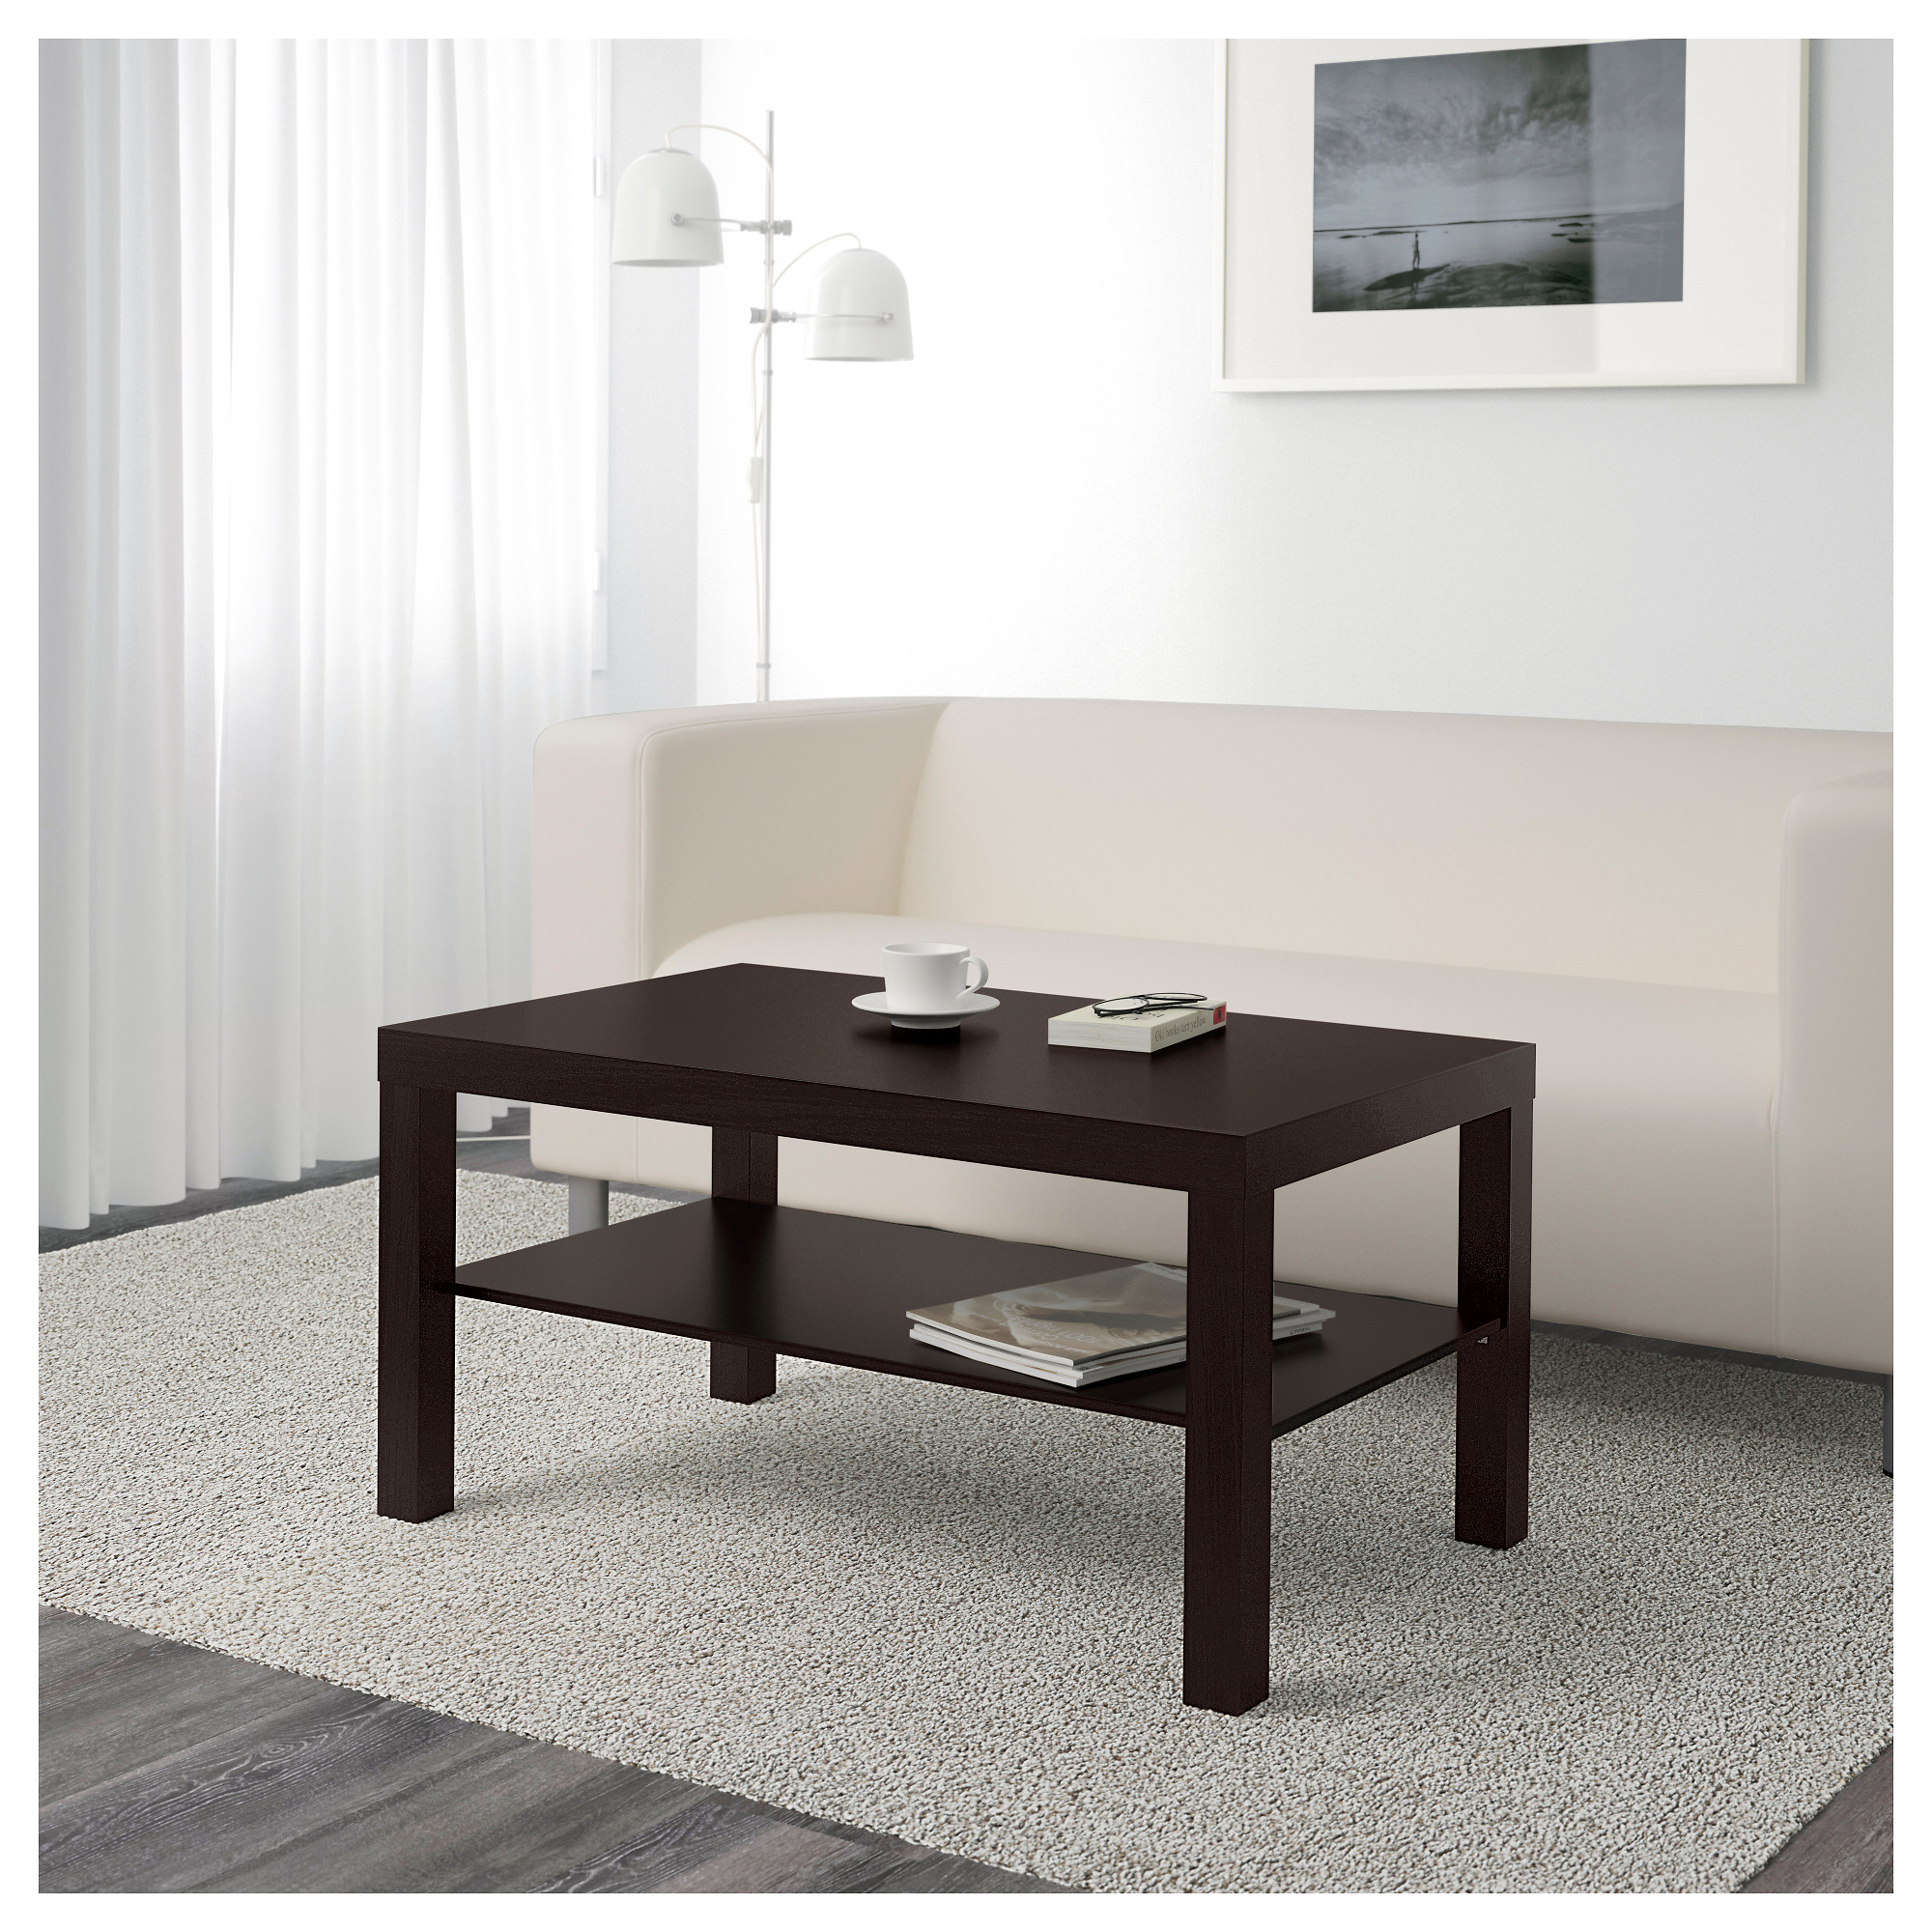 "LACK Coffee table black brown 35 3 8x21 5 8 "" IKEA"